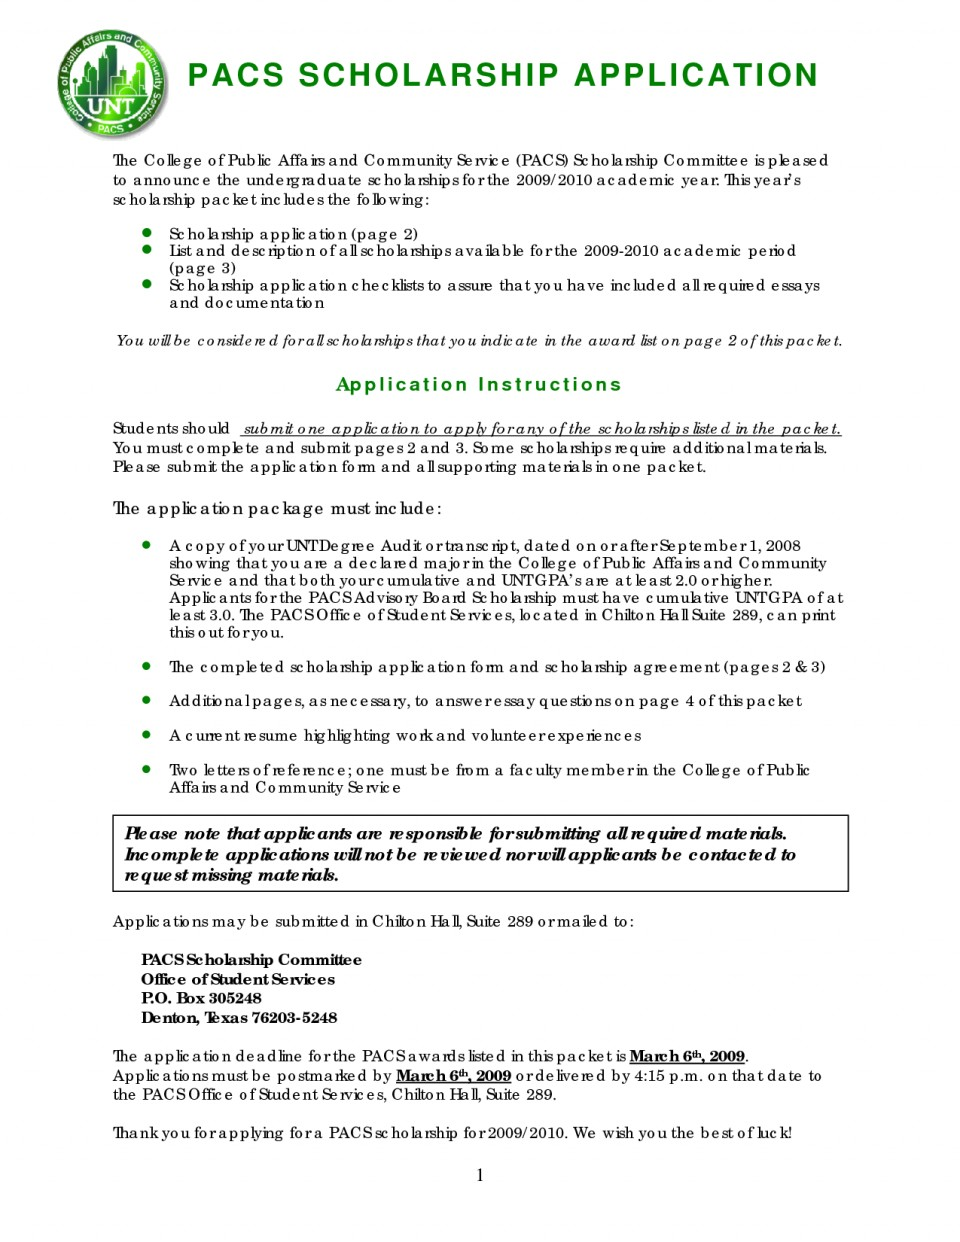 003 Scholarship Application Essay Example Staggering Mba Sample Tips College Ideas 960